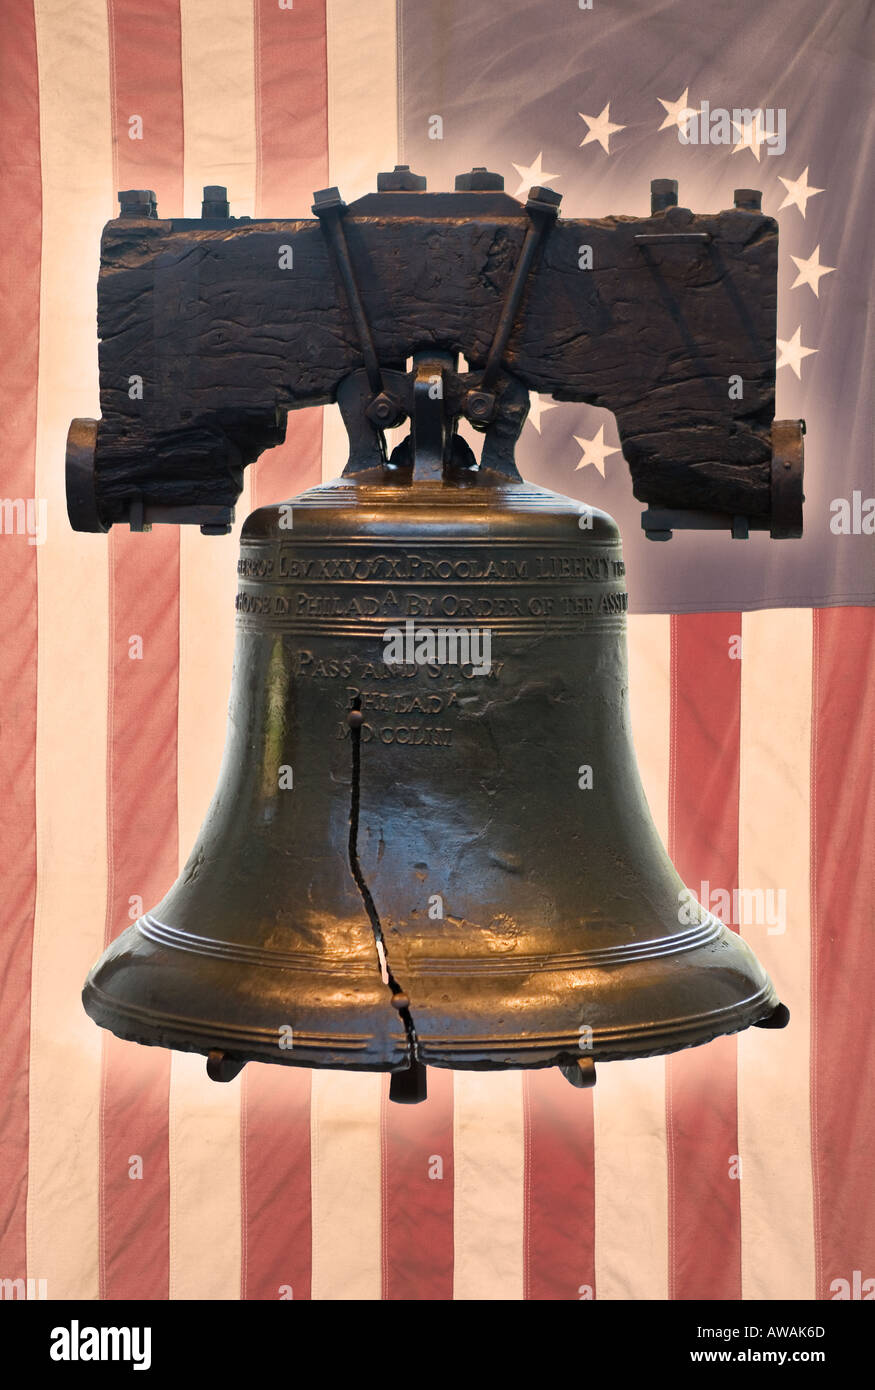 Liberty Bell and American flag with thirteen stars - Stock Image